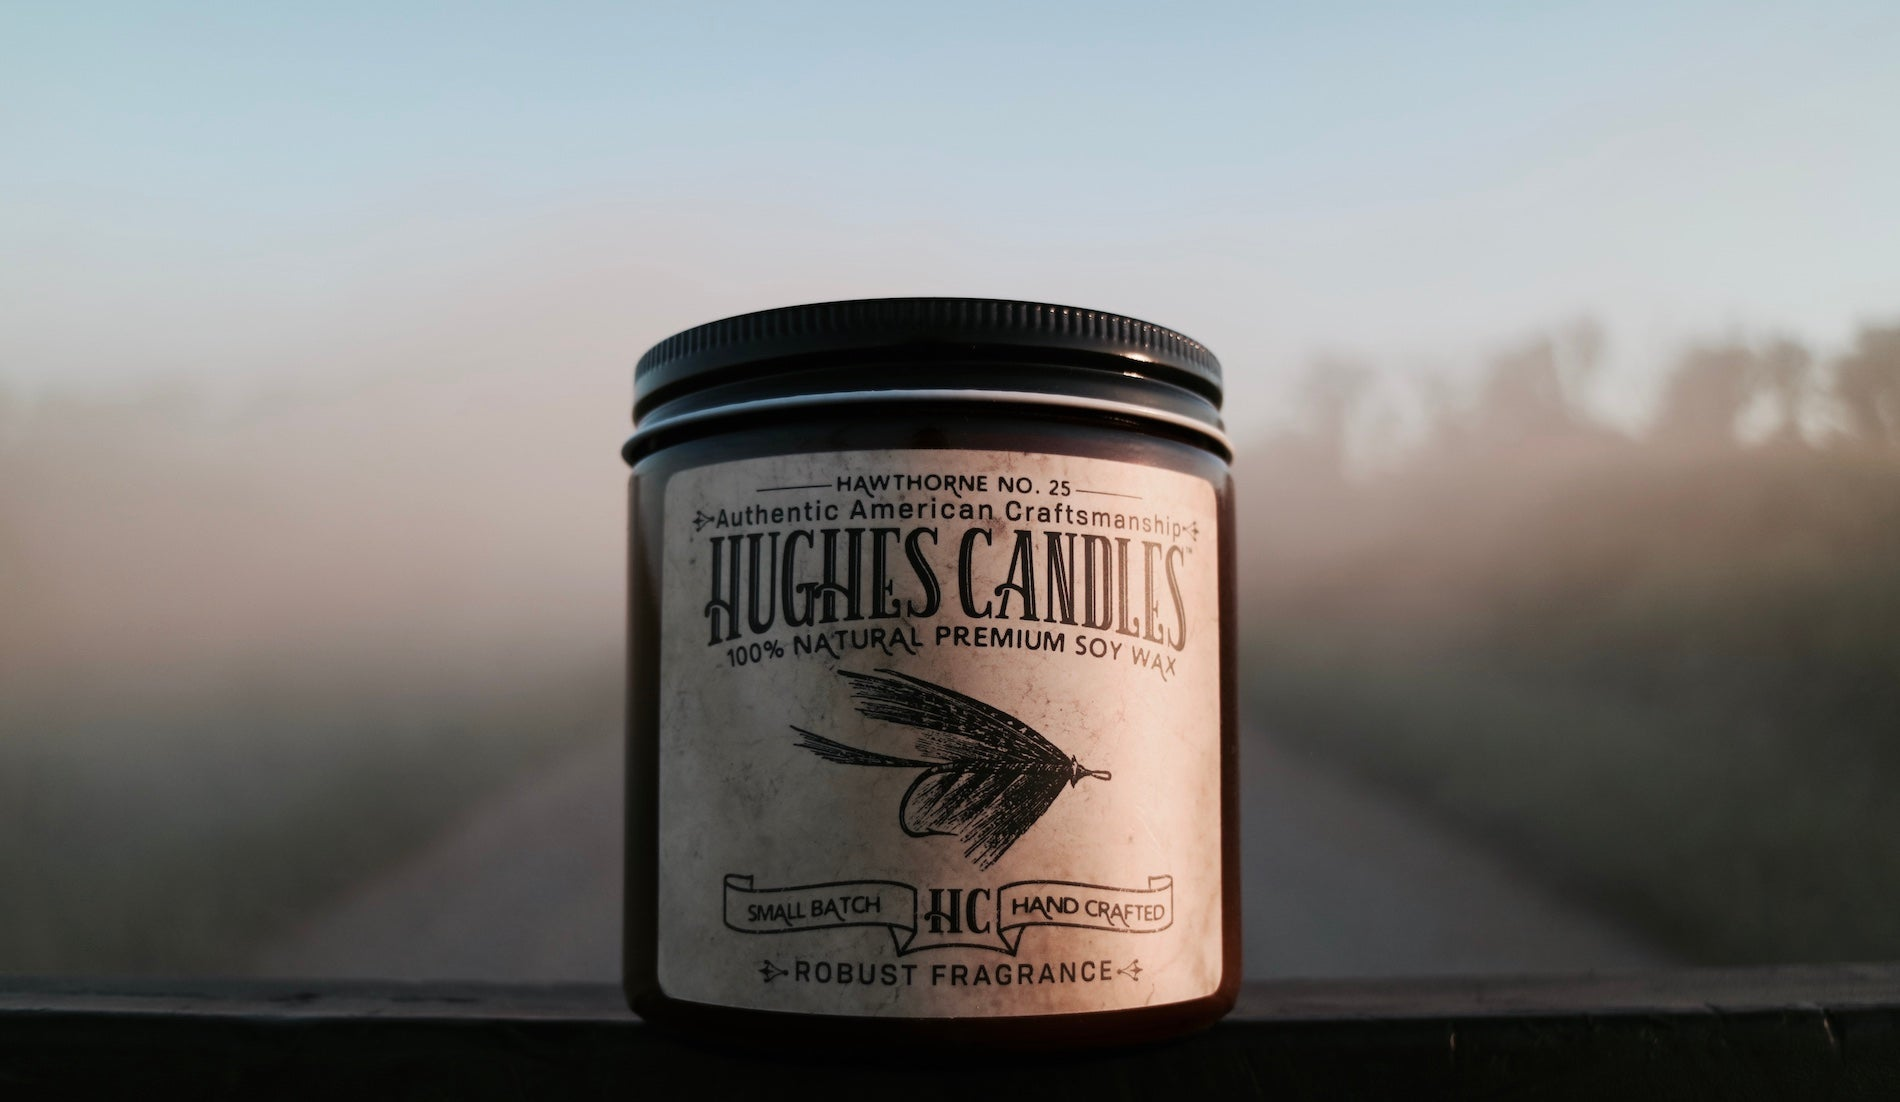 Hughes Candles Wood wick Soy Candles